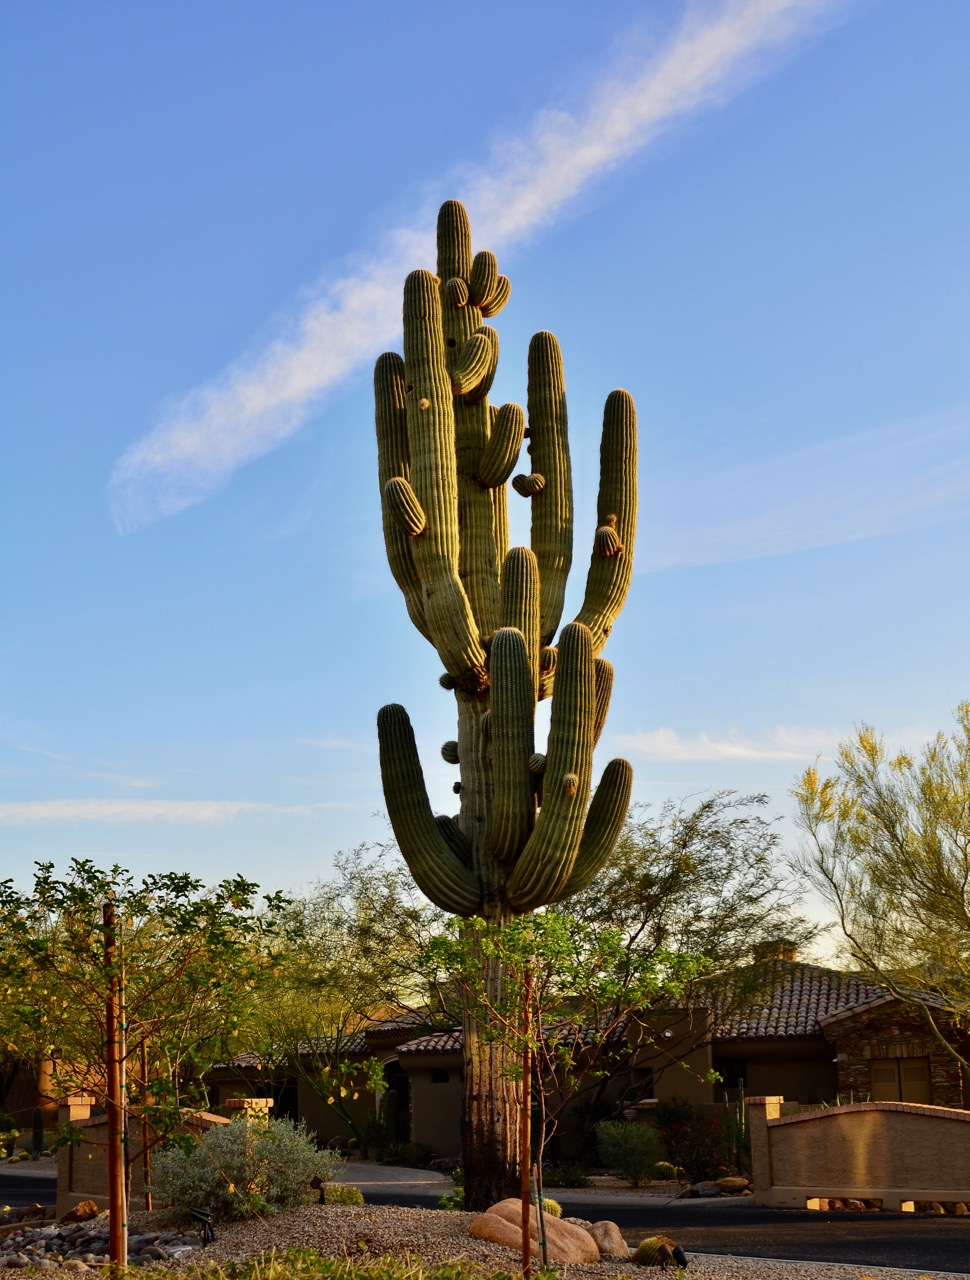 This a huge saguaro cactus that sits beside our patio. Our neighbor said this particular cactus is at least 150 years old....sort of puts things in perspective doesn't it? We're here and gone and nature just keeps on going.